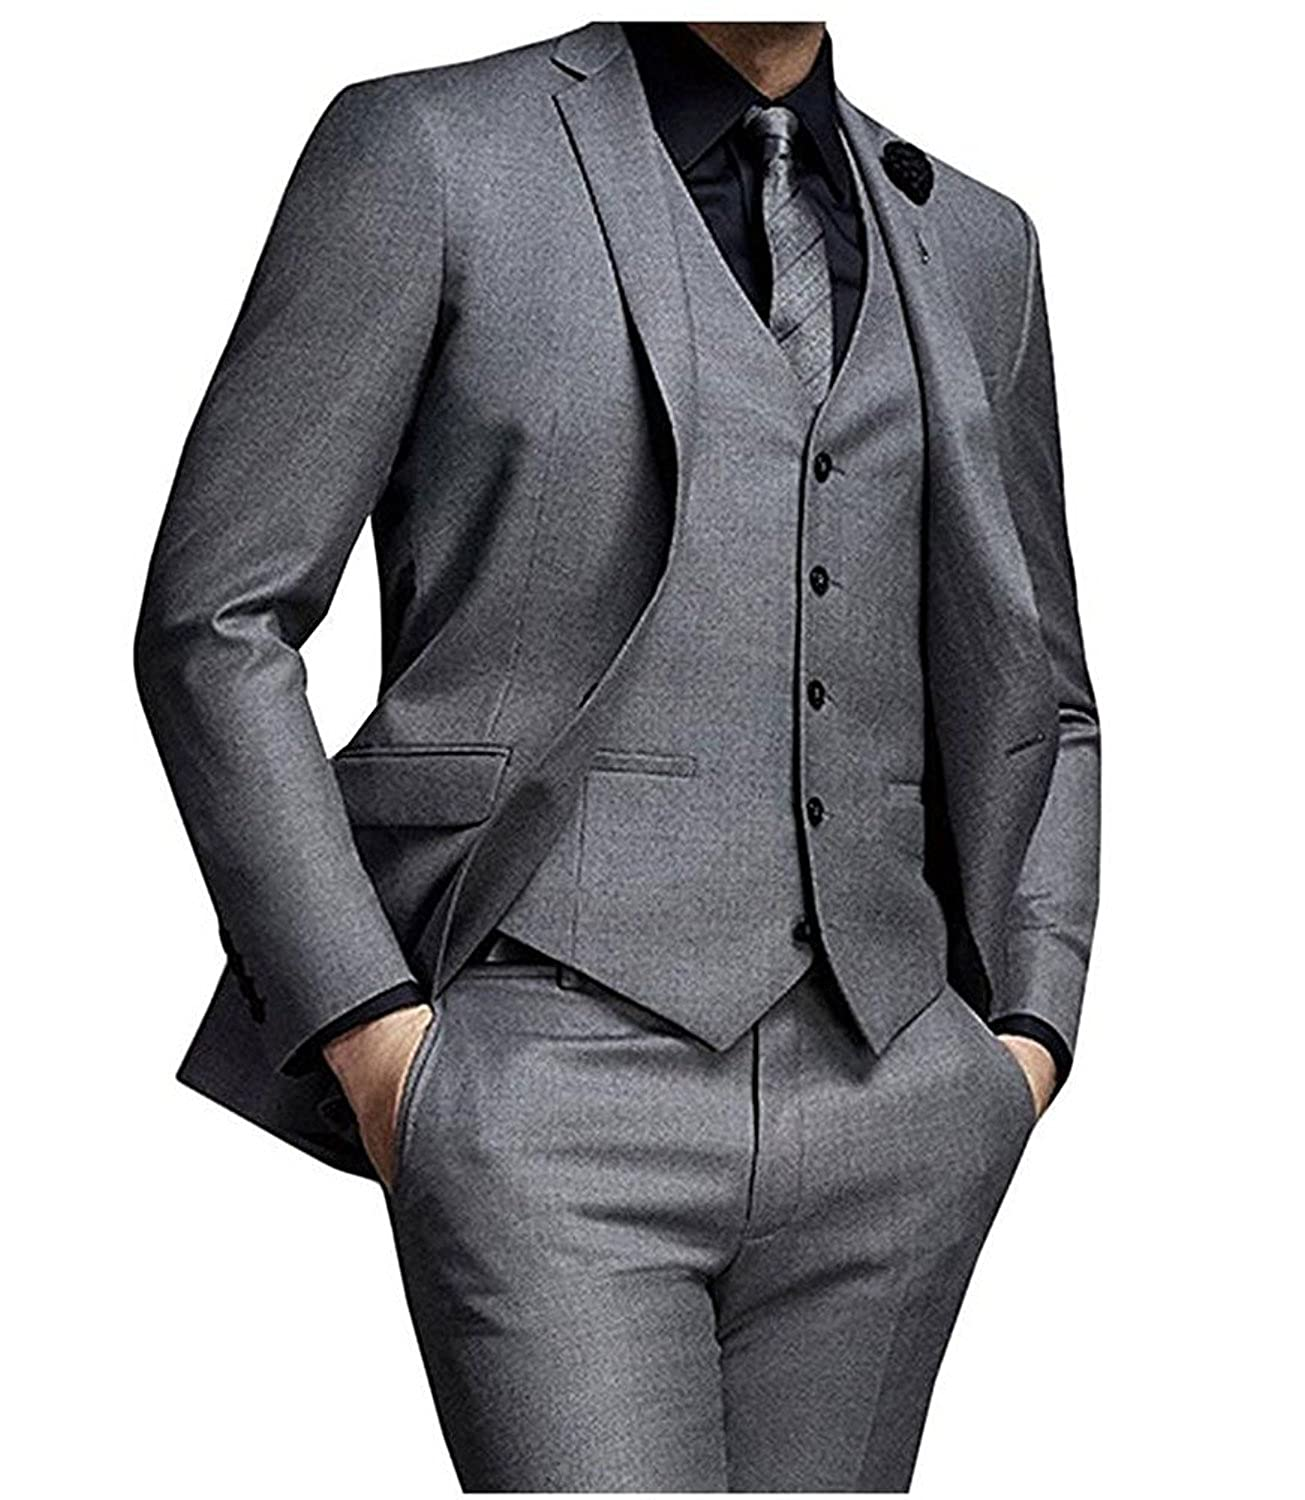 JY Mens 3 Pieces Mens Suits Groom Wedding Party Tuxedos Formal Suits MS17120910